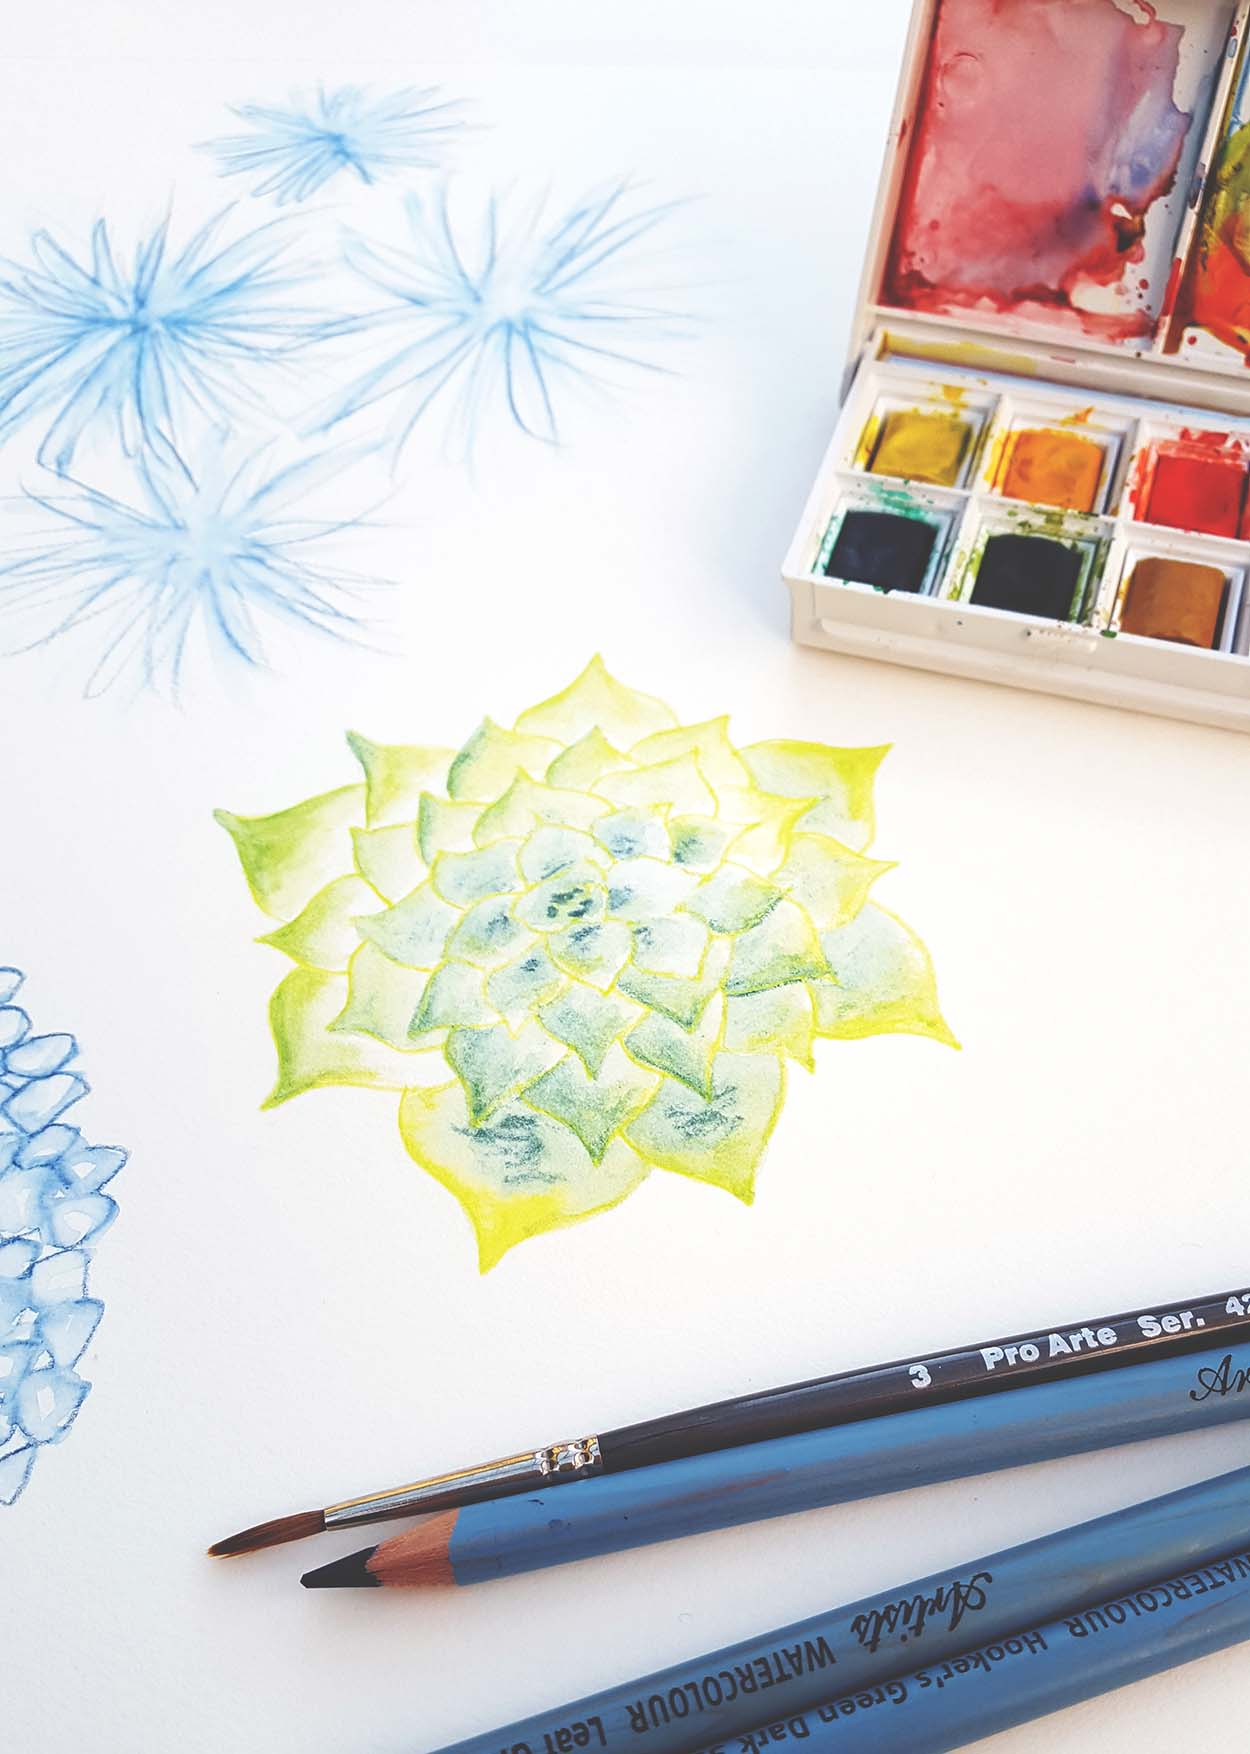 Finding inspiration: succulent sketch